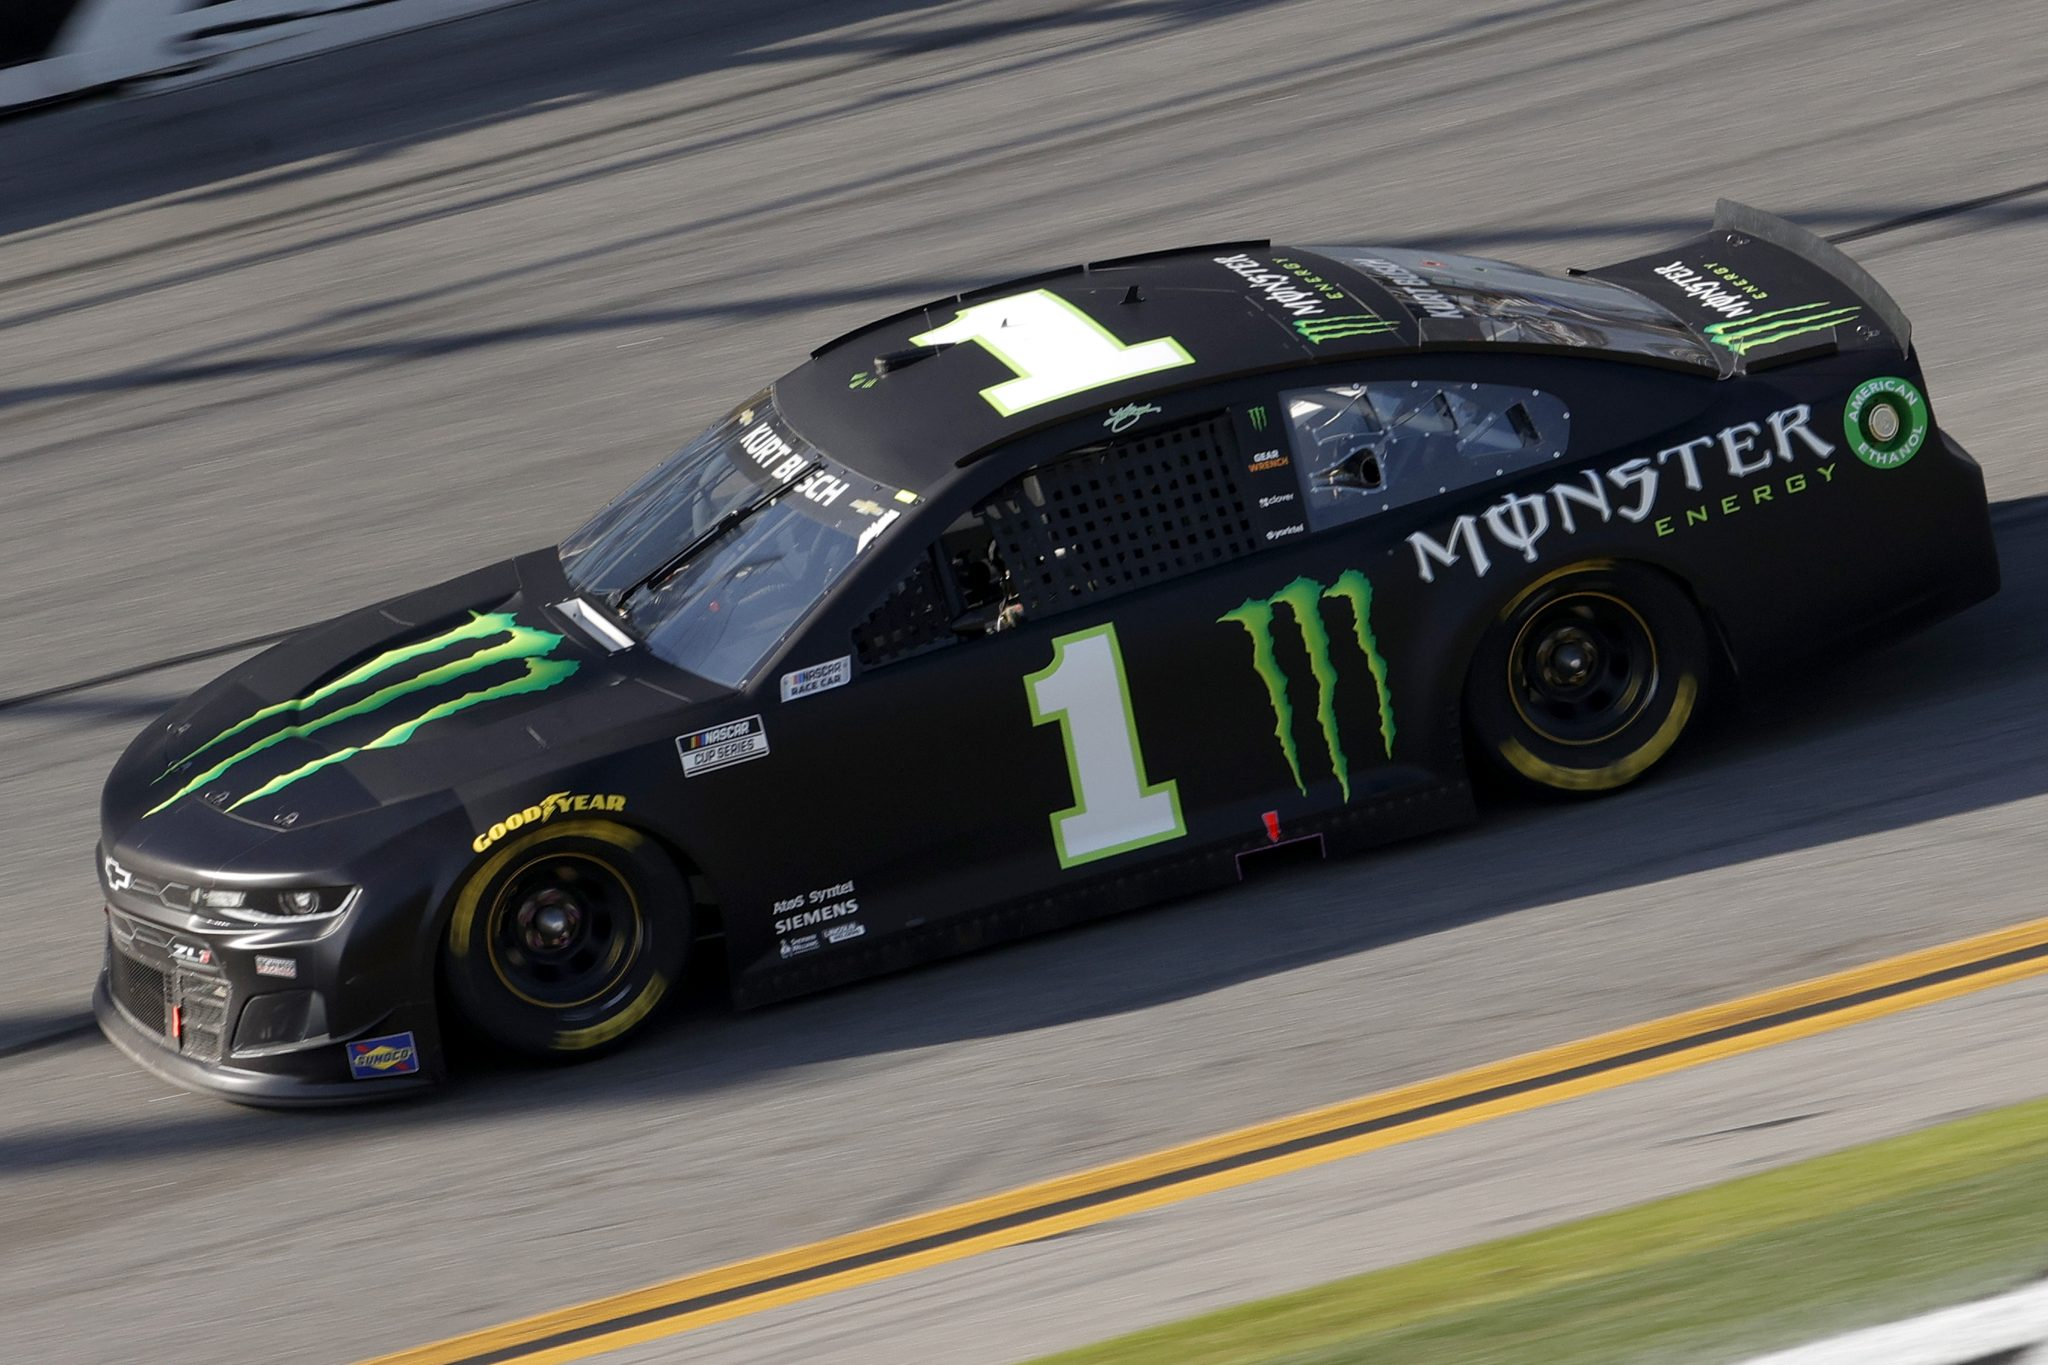 DAYTONA BEACH, FLORIDA - FEBRUARY 21: Kurt Busch, driver of the #1 Monster Energy Chevrolet, drives during the NASCAR Cup Series O'Reilly Auto Parts 253 at Daytona International Speedway on February 21, 2021 in Daytona Beach, Florida. (Photo by Chris Graythen/Getty Images) | Getty Images